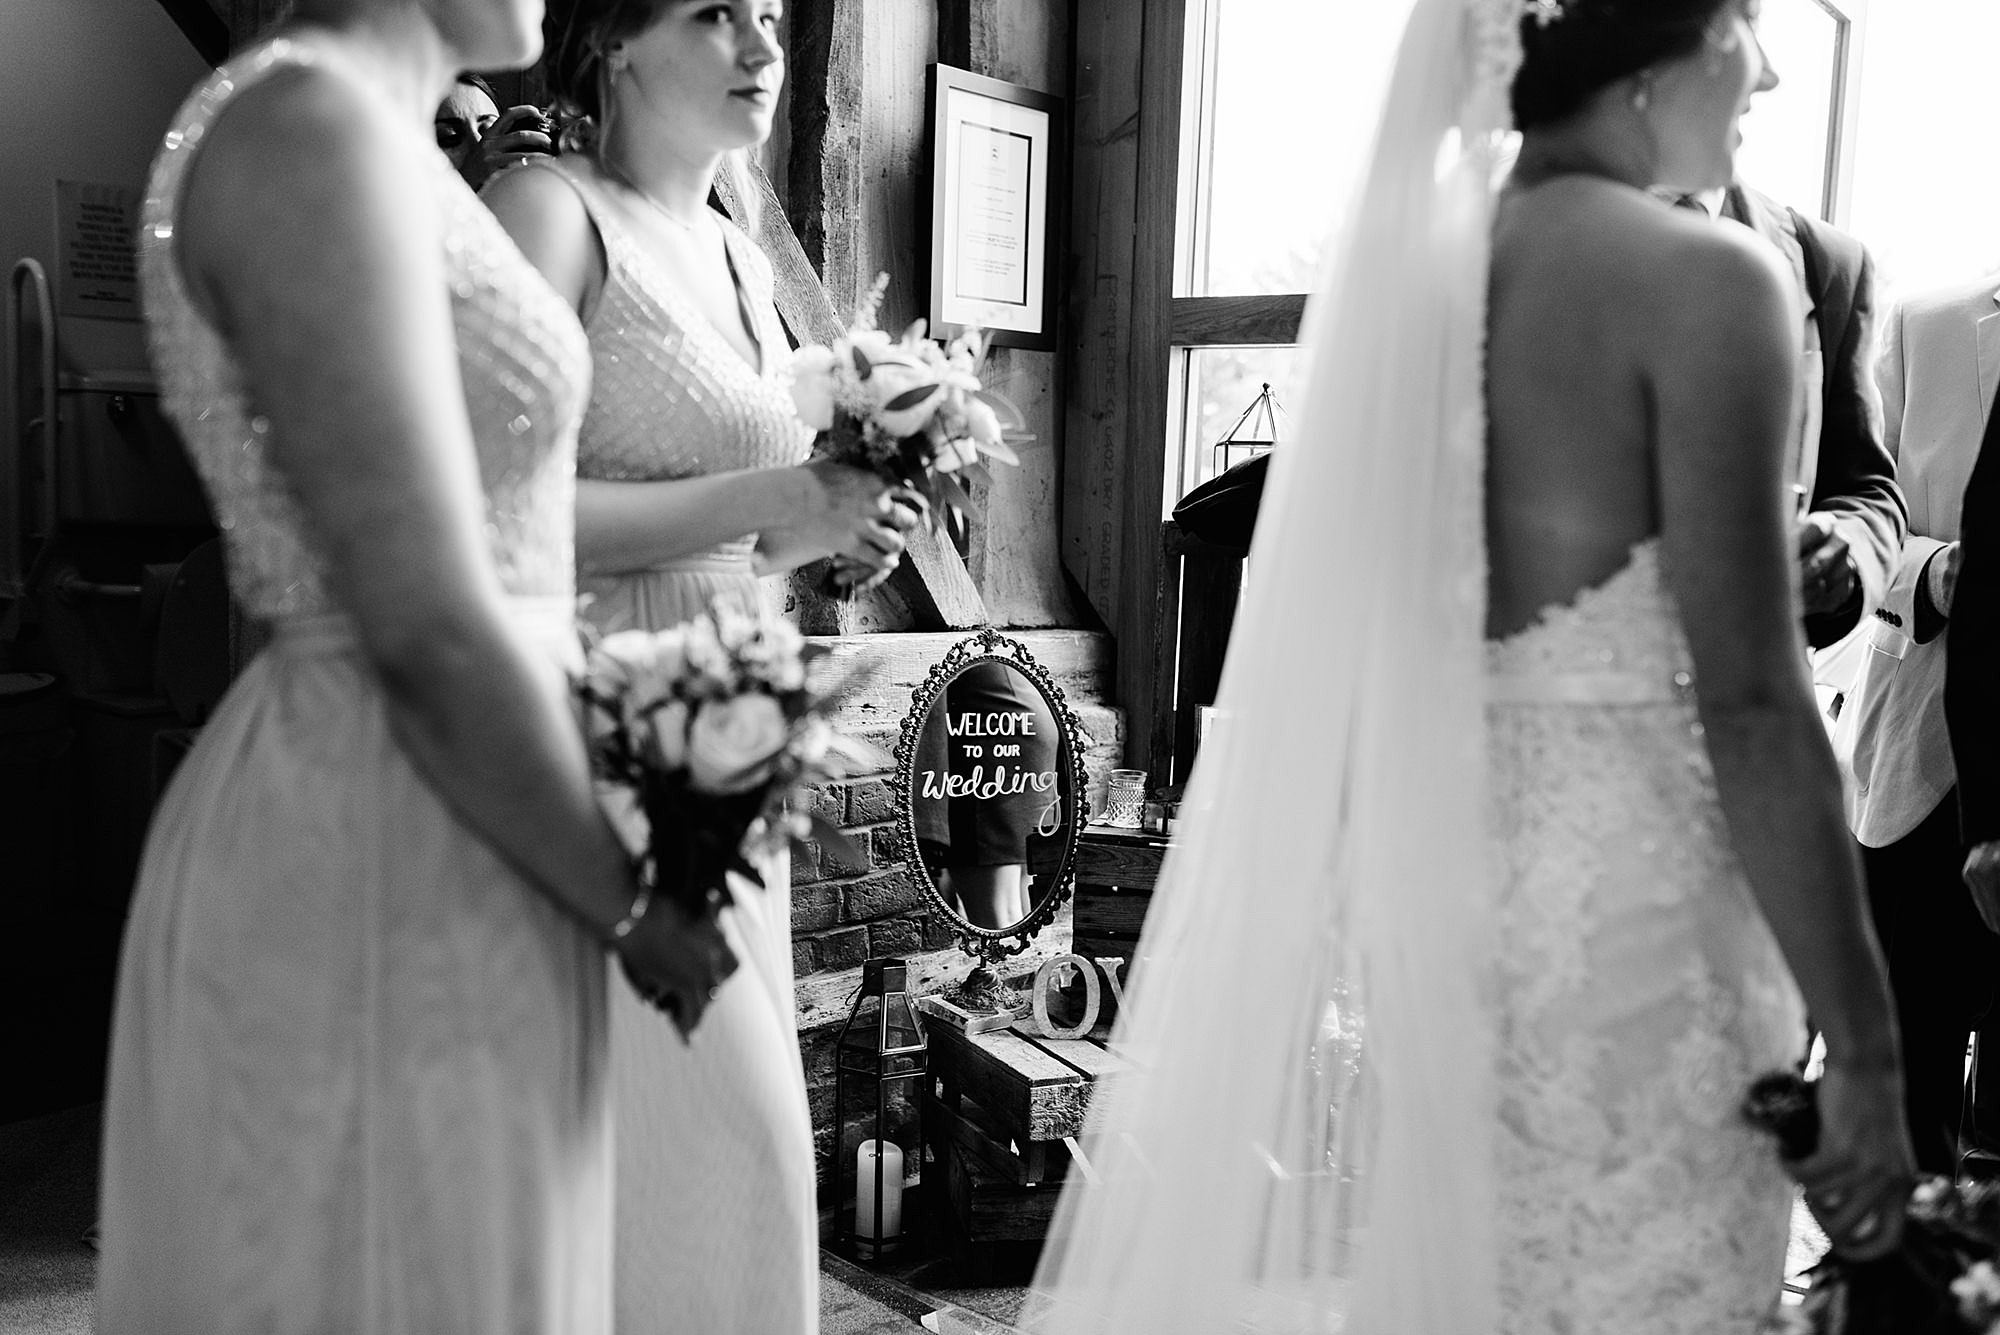 Lillibrooke Manor wedding welcome sign